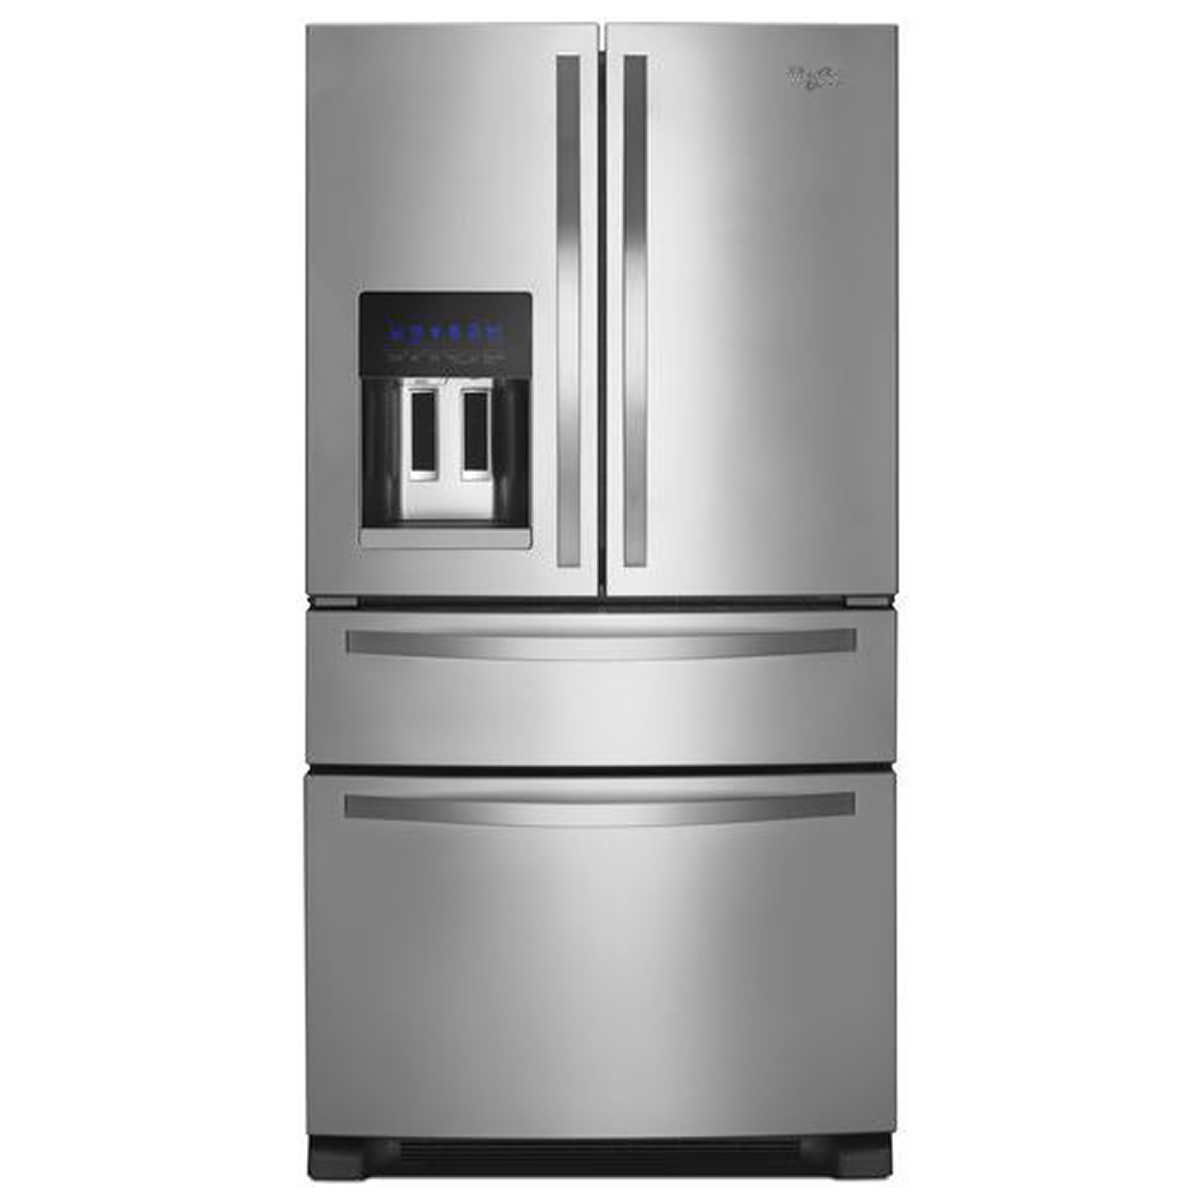 Non Stainless Steel Appliances Whirlpool 25cuft French Door Stainless Steel Refrigerator With